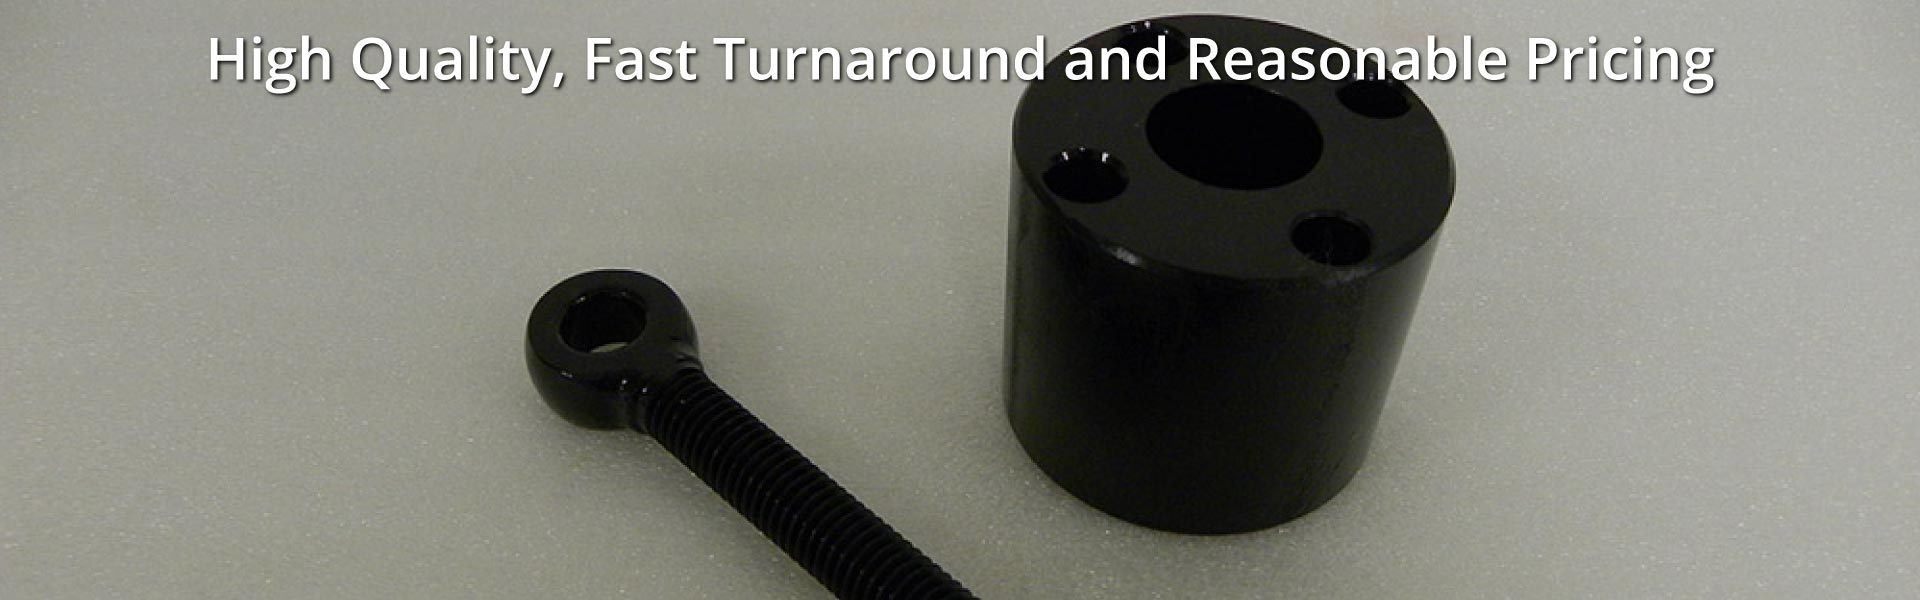 High Quality, Fast Turnaround and Reasonable Pricing | Black Oxide over steel